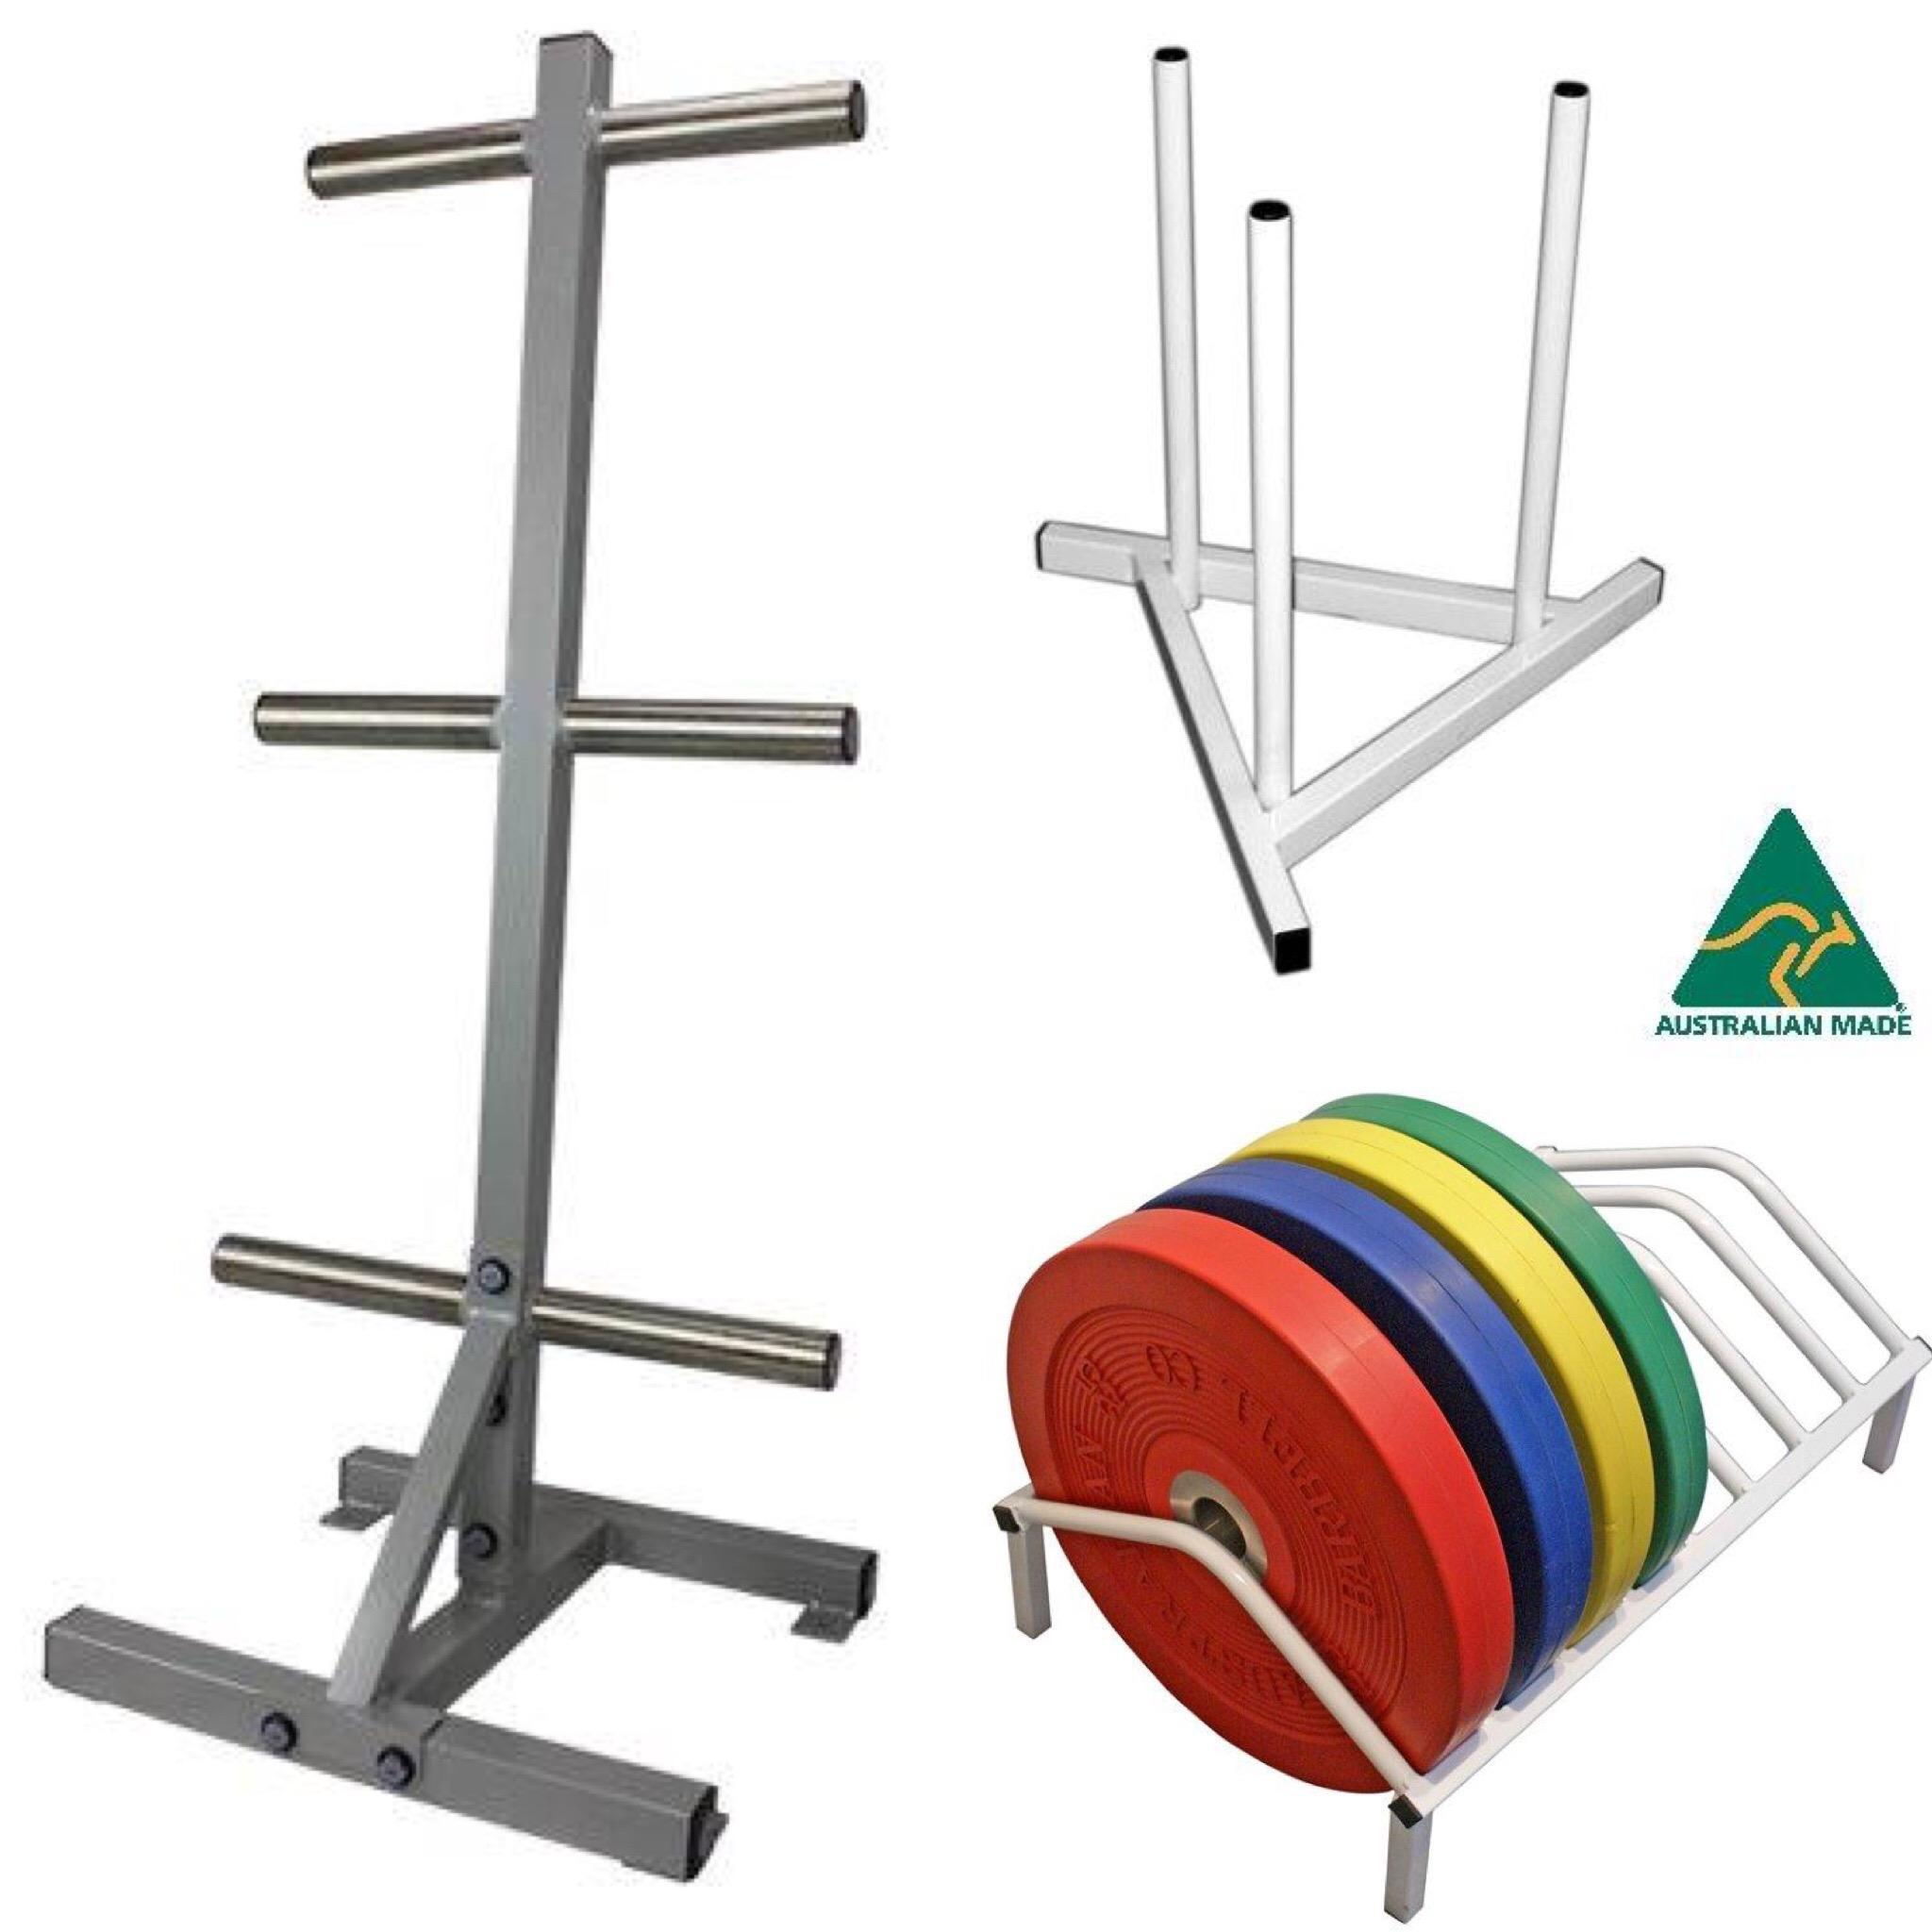 weight fitness rack t equipment don product pump oliver sets storage stand